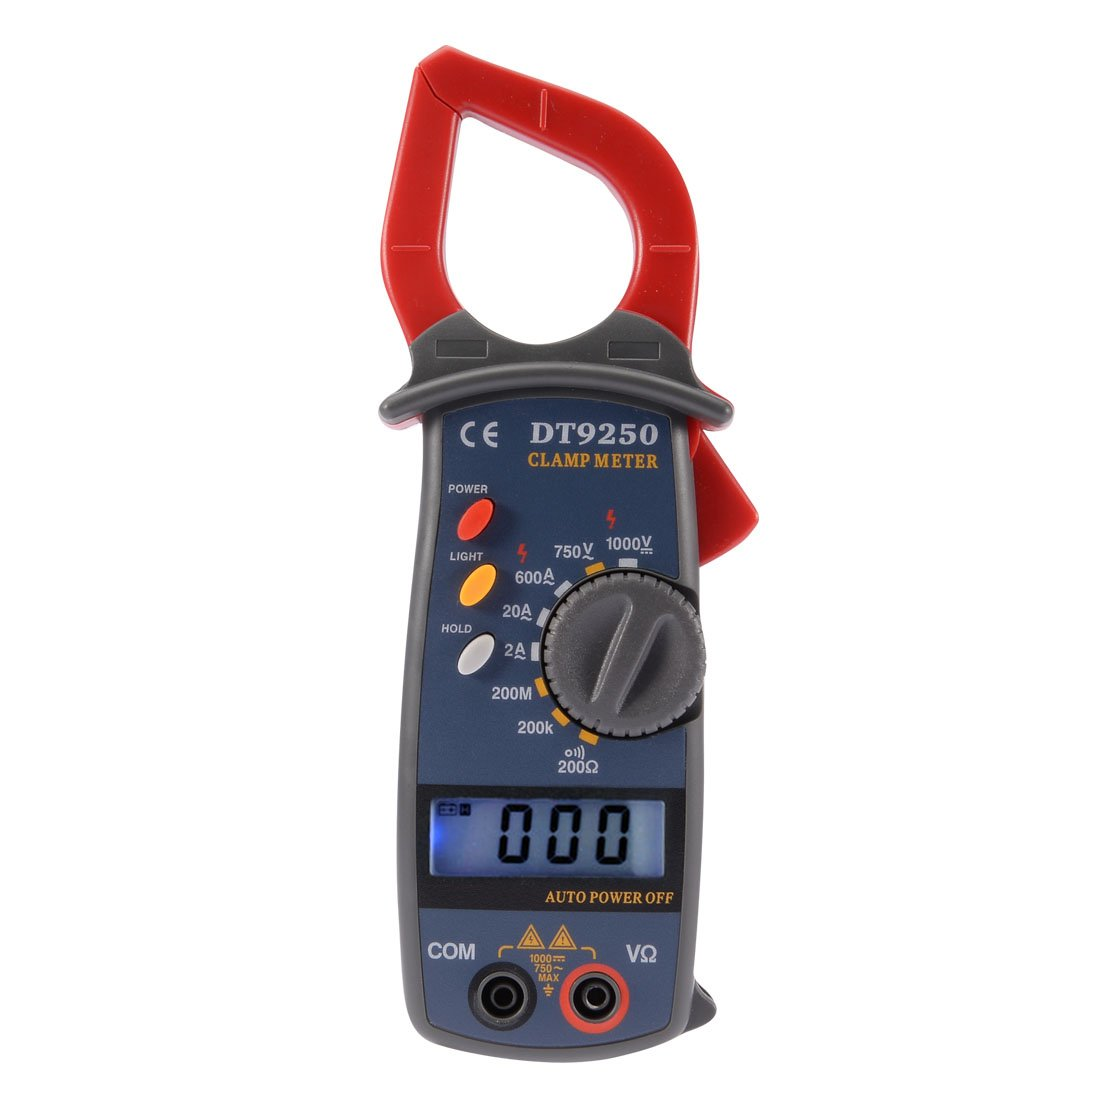 uxcell 600A AC Meter Clamp Digital Clip-on Multimeter LCD Display Volt Ammeter Test Resistance Continuity Current Battery Powered Instrument Tool Portable